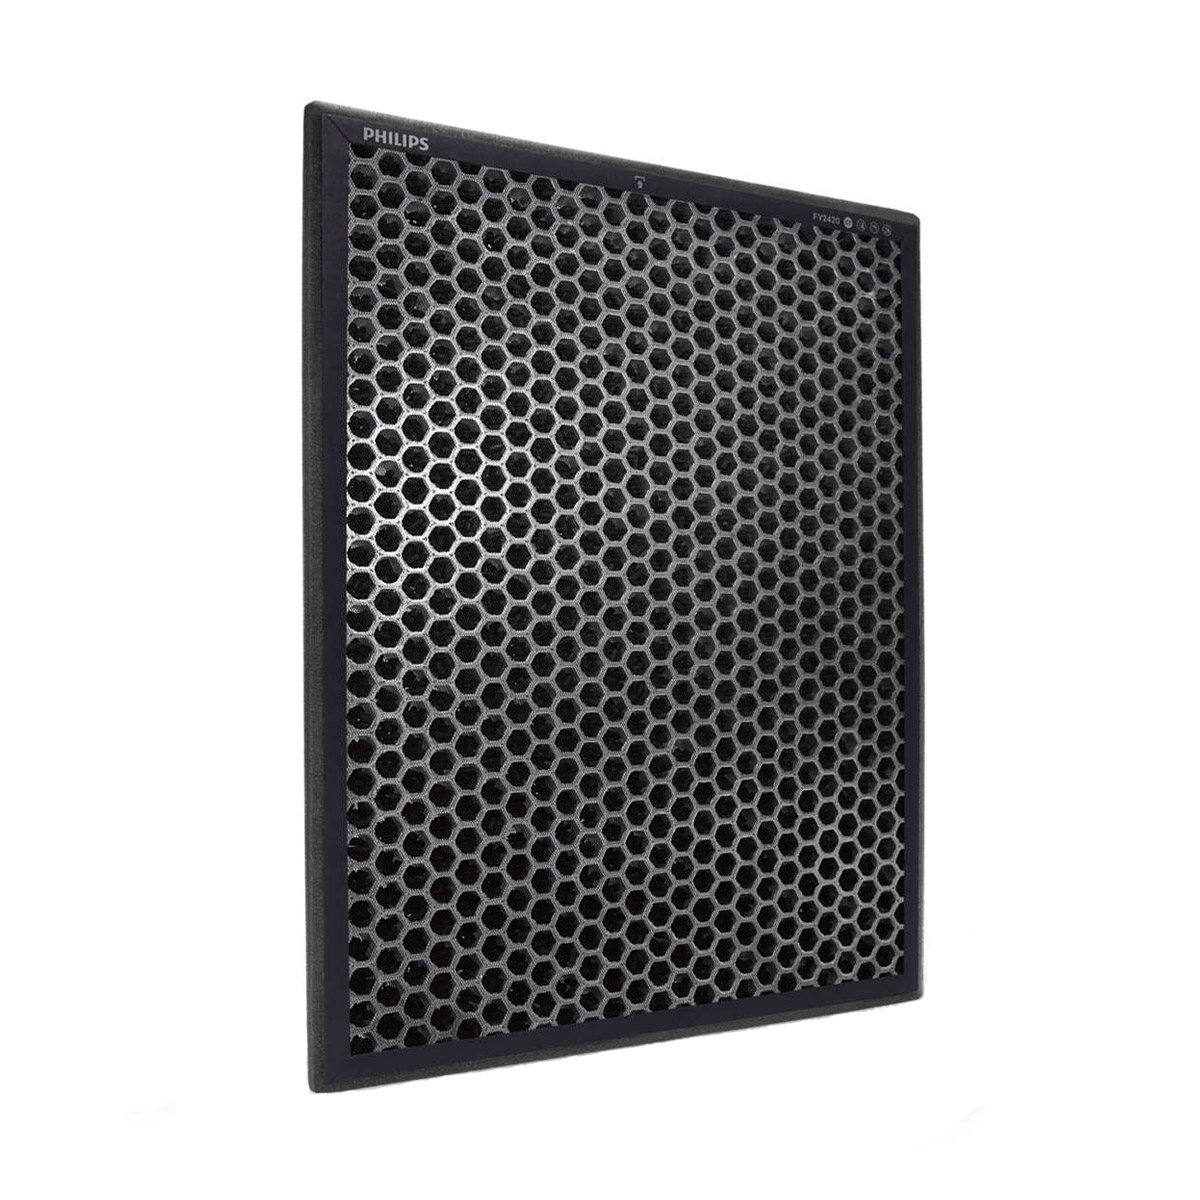 Philips NanoProtect Active Carbon Series 2000 Replacement Filter